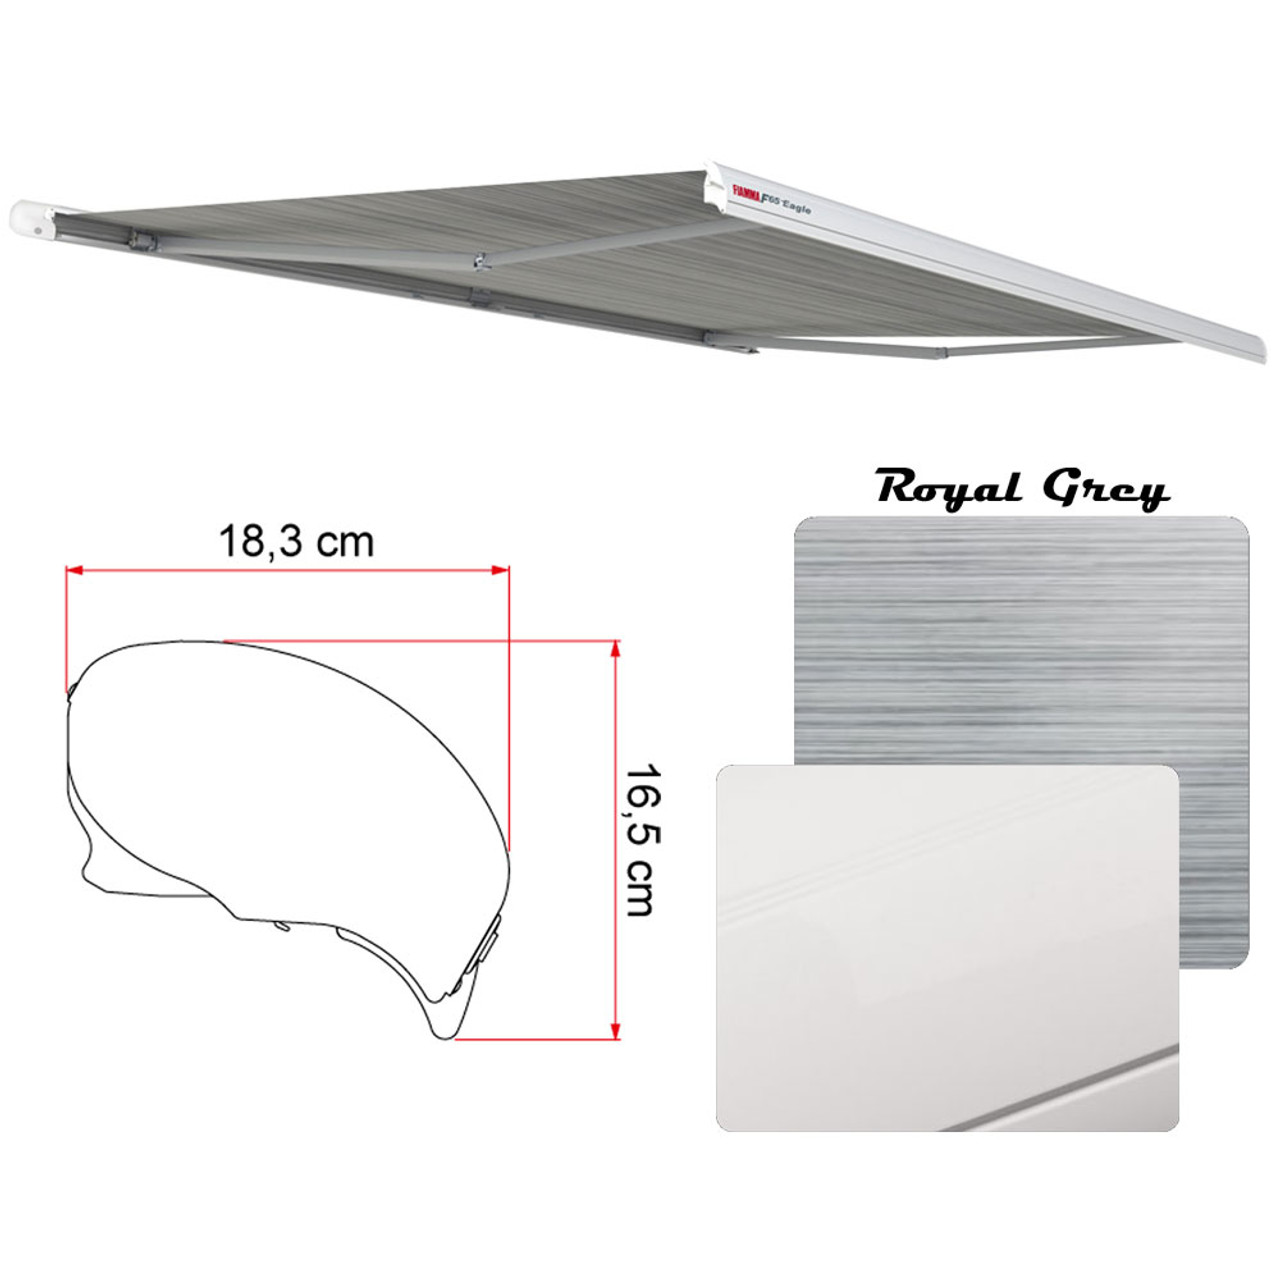 Fiamma 07755g01r Electric F65 Eagle Case Awning 369 13 2 White Case Royal Grey Fabric